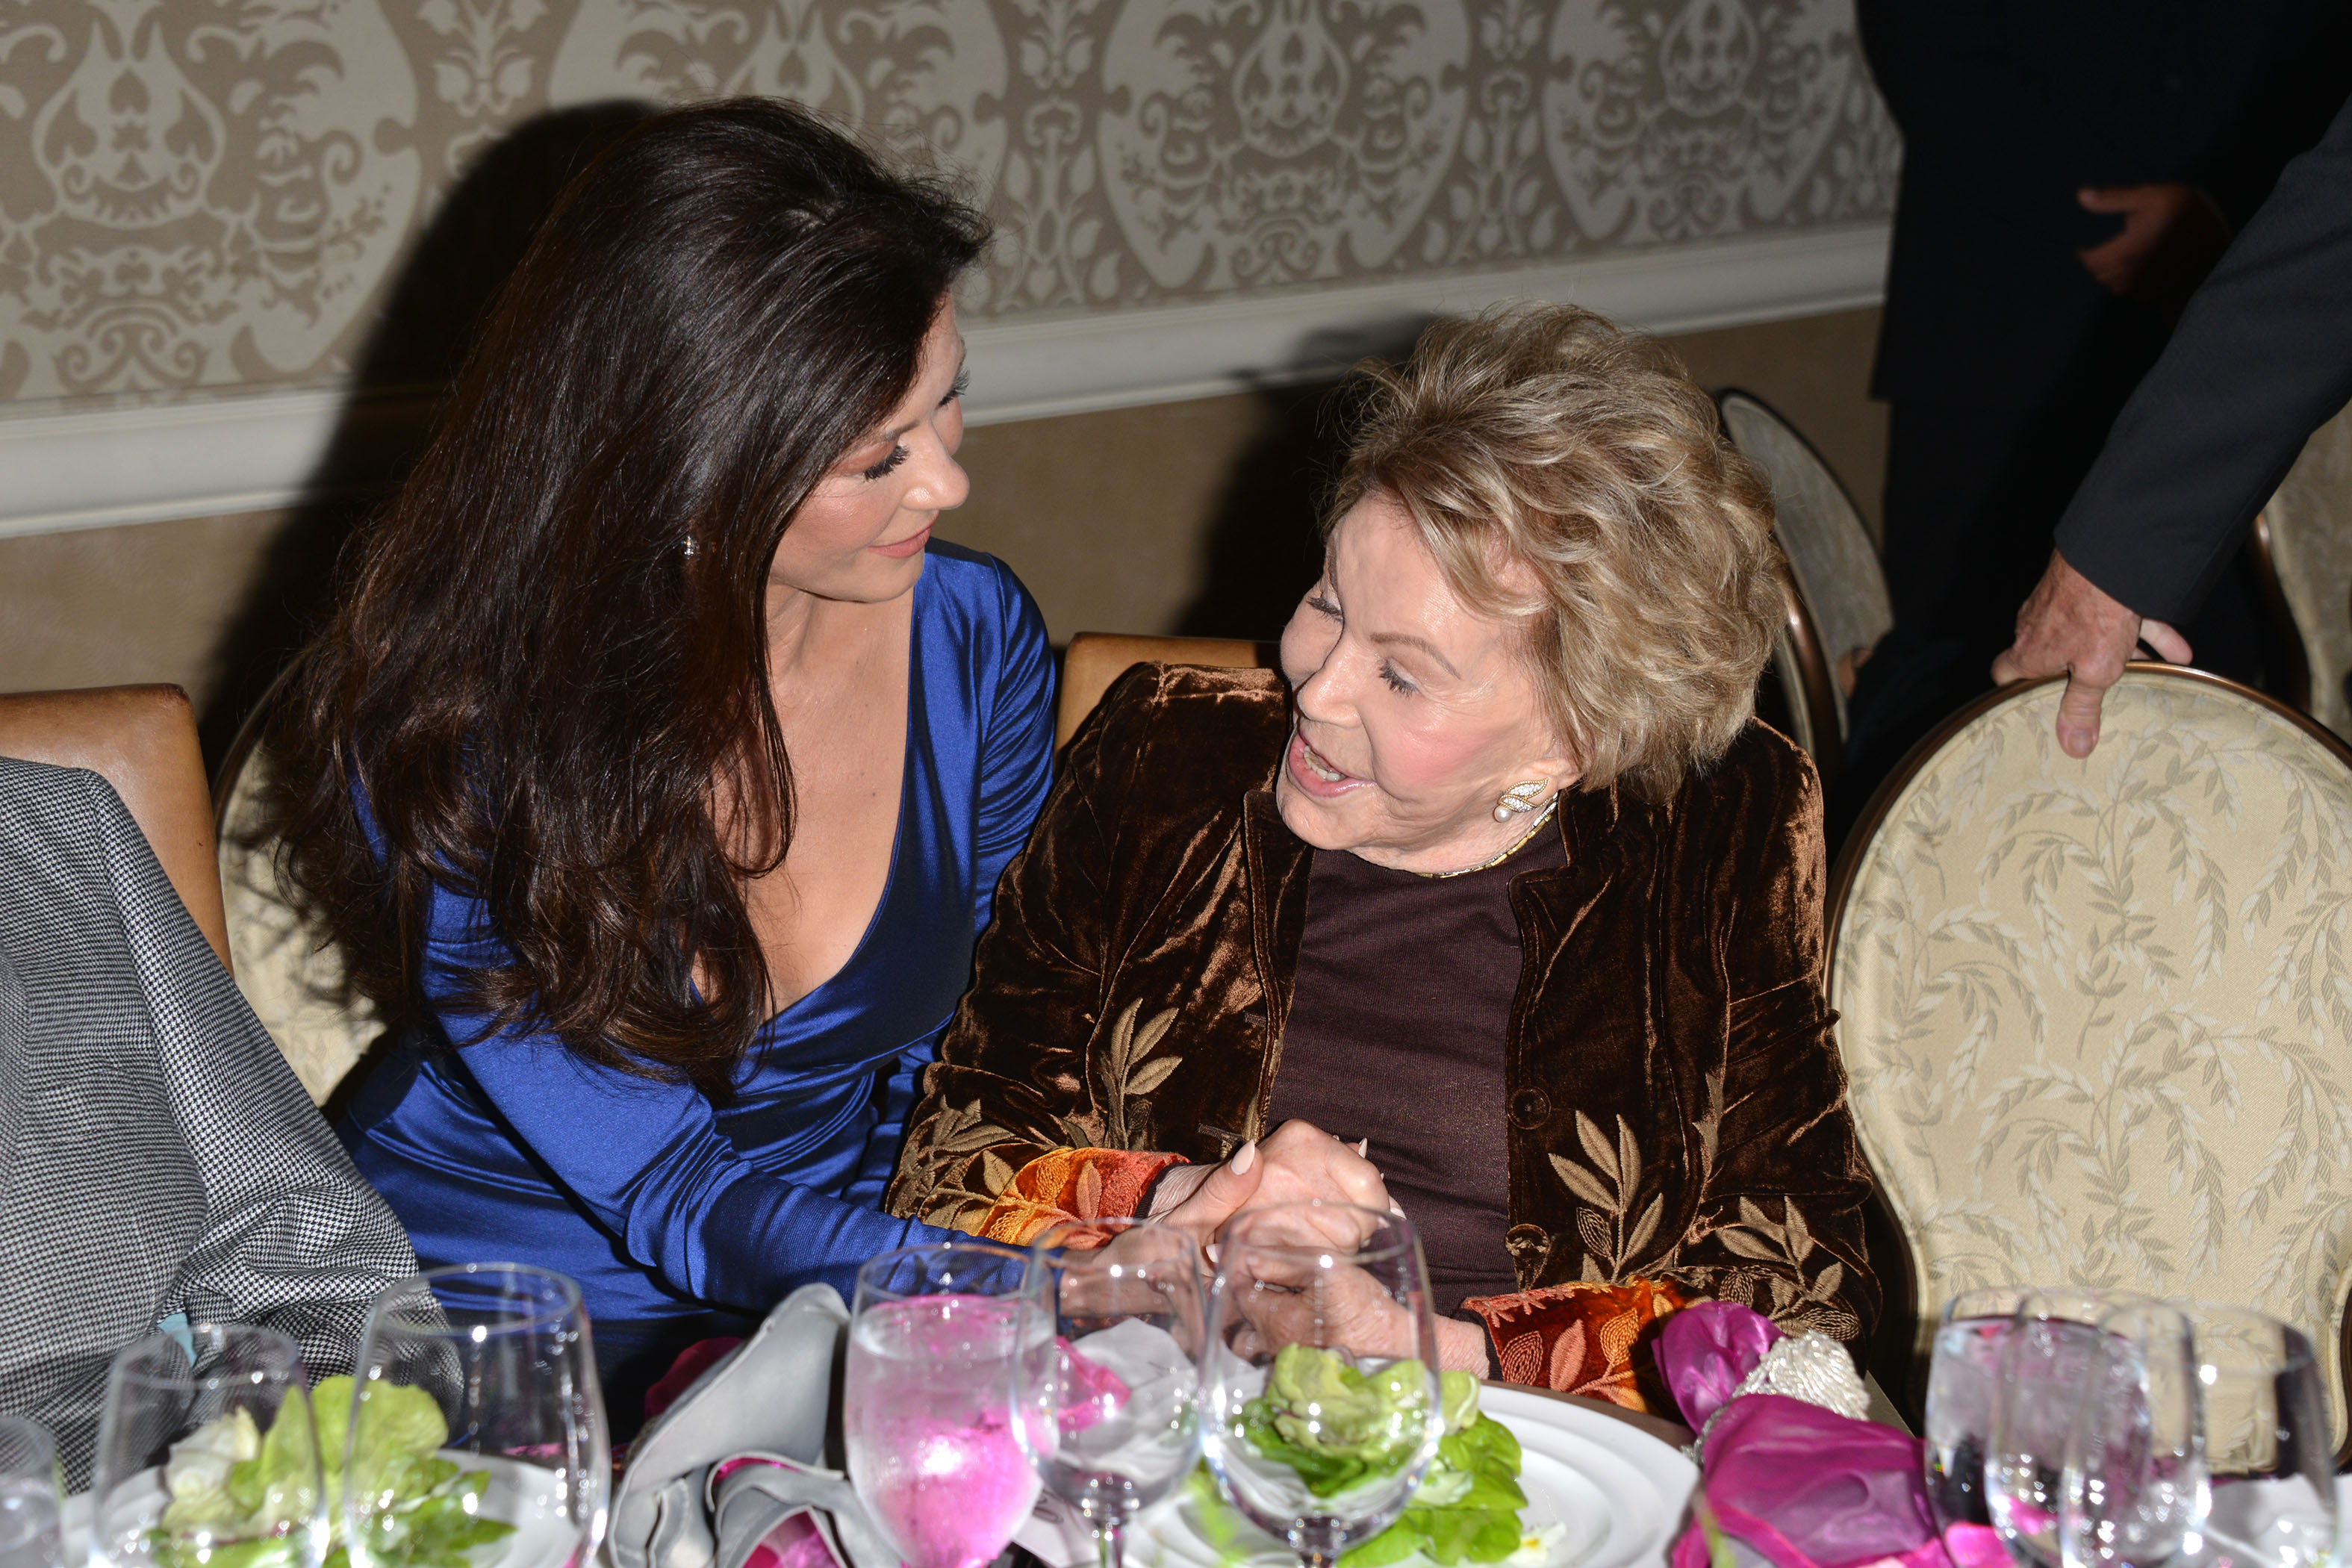 7th Annual Legacy of Vision Gala <P> Pictured: Anne Douglas and Catherine Zeta-Jones <B>Ref: SPL1618444  091117  </B><BR/> Picture by: Tony DiMaio / Splash News<BR/> </P><P> <B>Splash News and Pictures</B><BR/> Los Angeles:310-821-2666<BR/> New York:212-619-2666<BR/> London:870-934-2666<BR/> <span id=